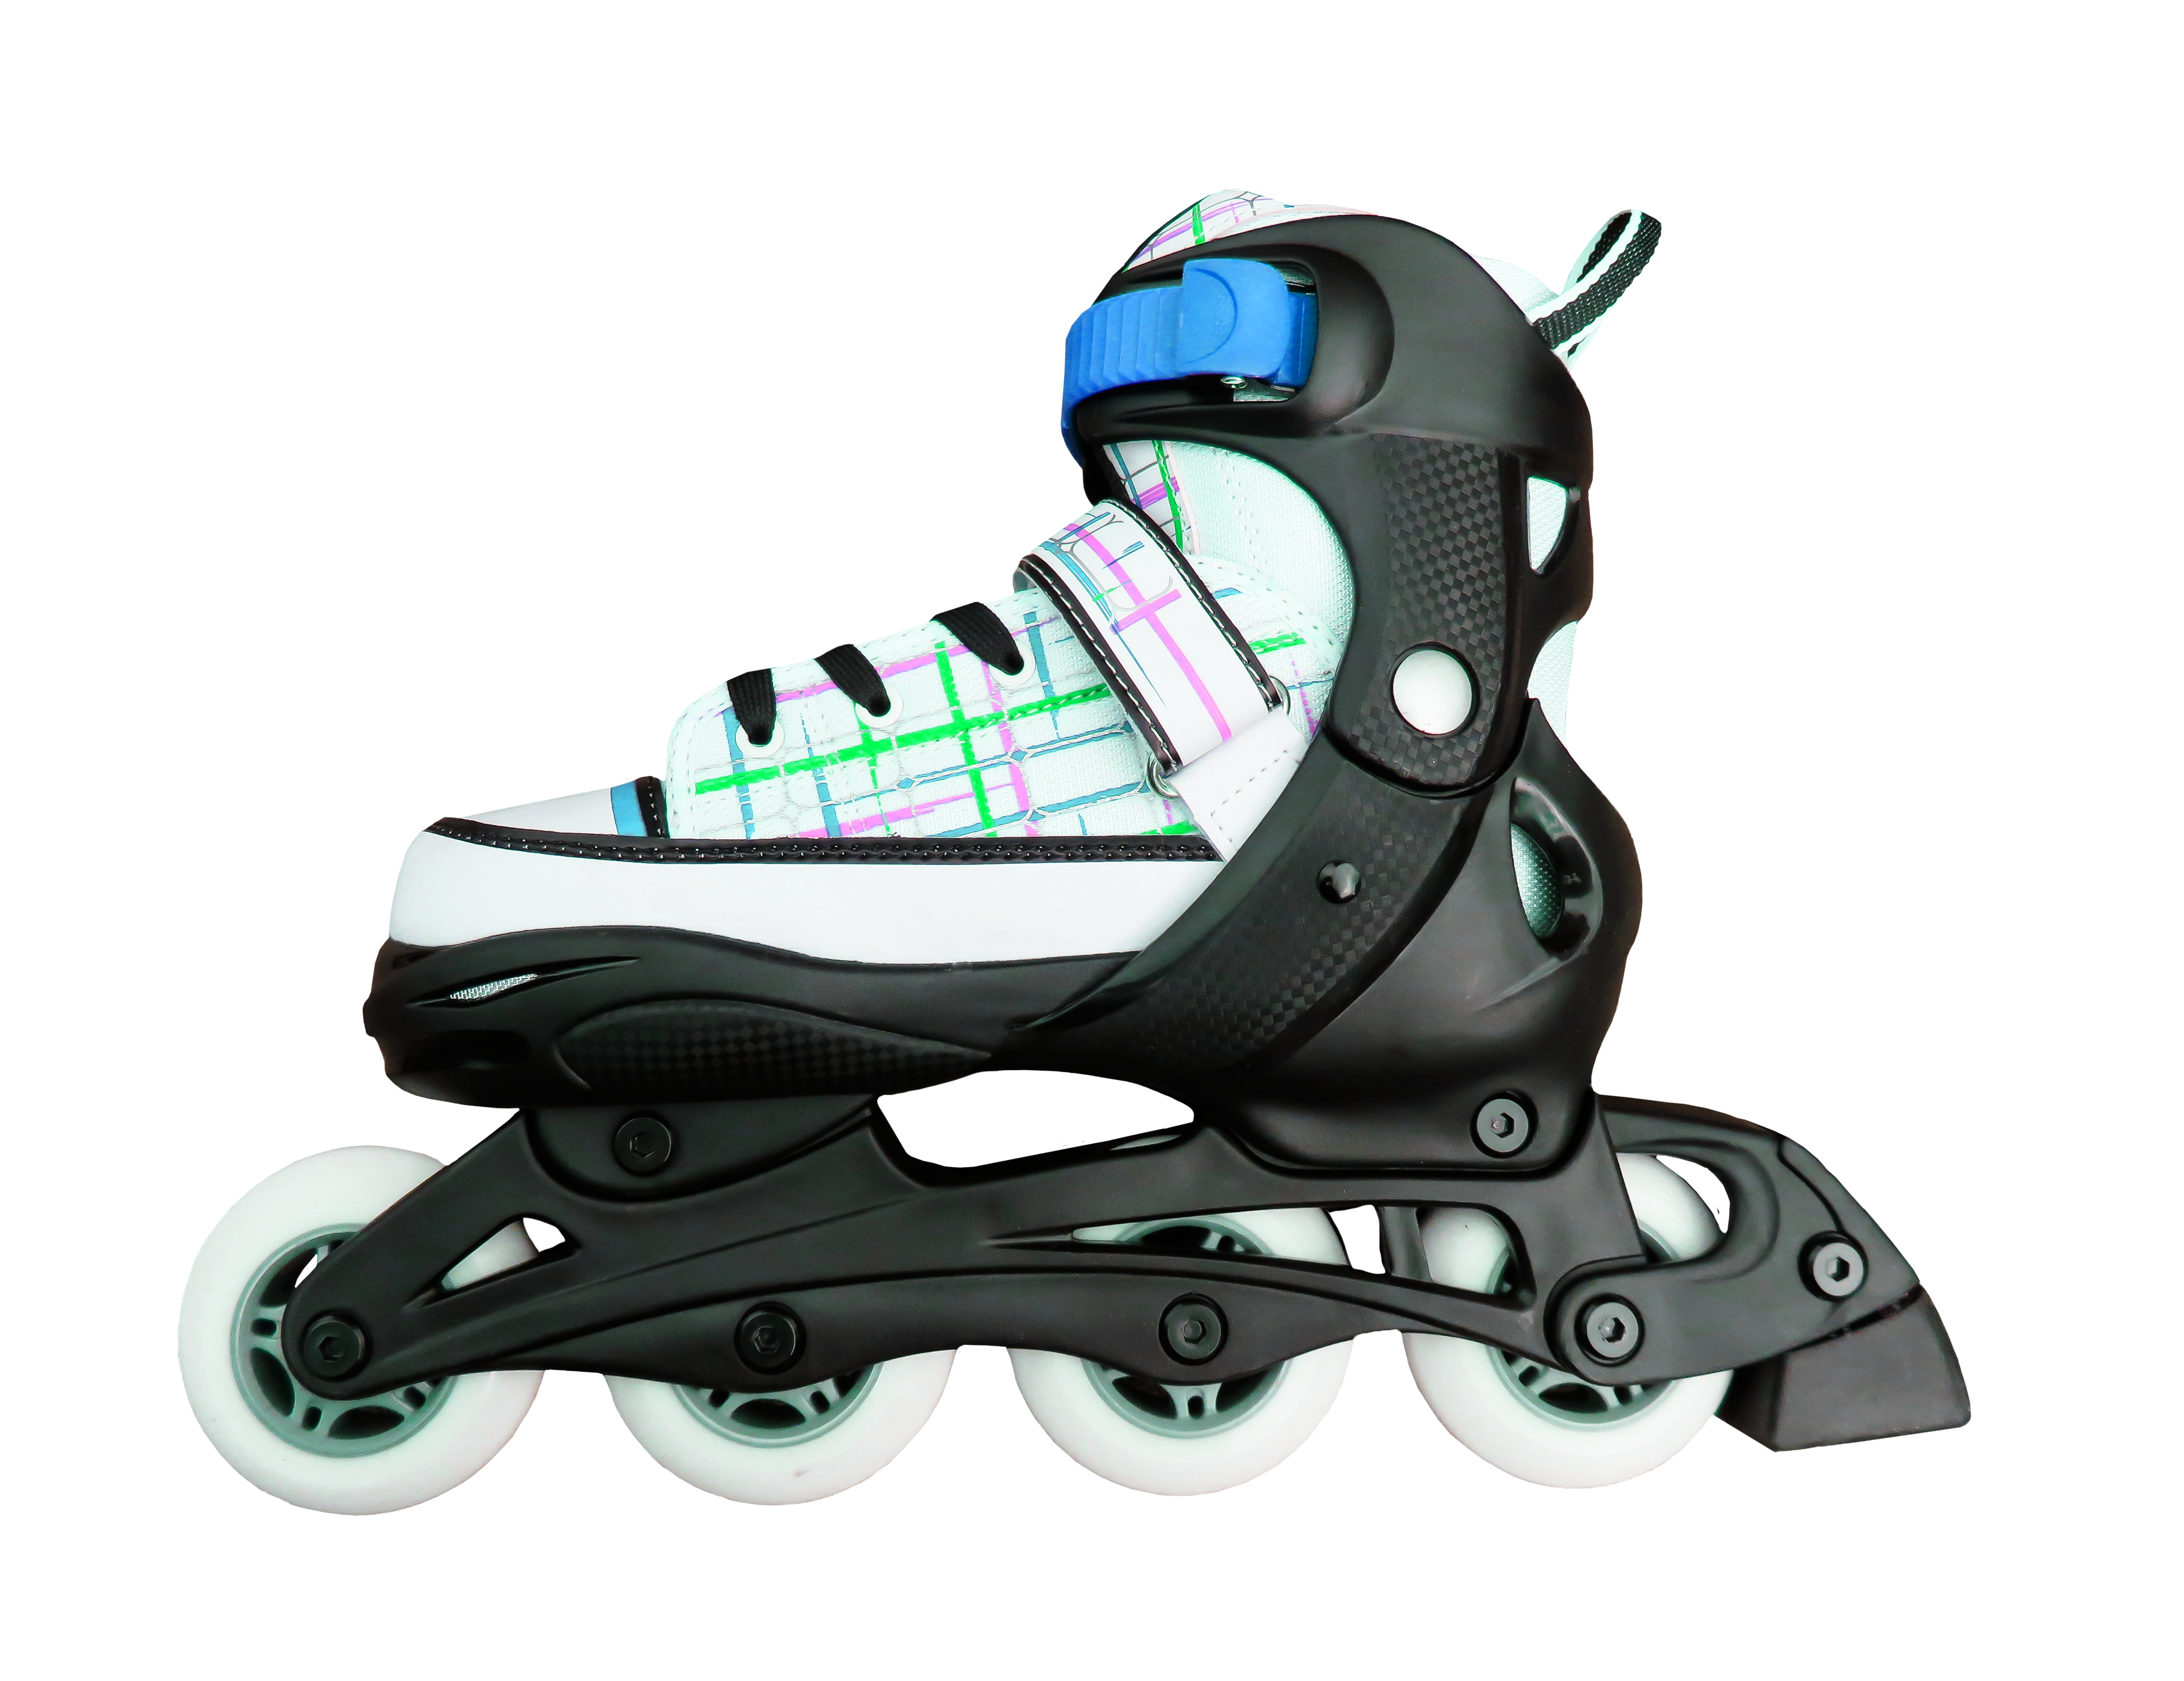 Proskate LED Light Up Shoes with USB Charger Kids/Adults